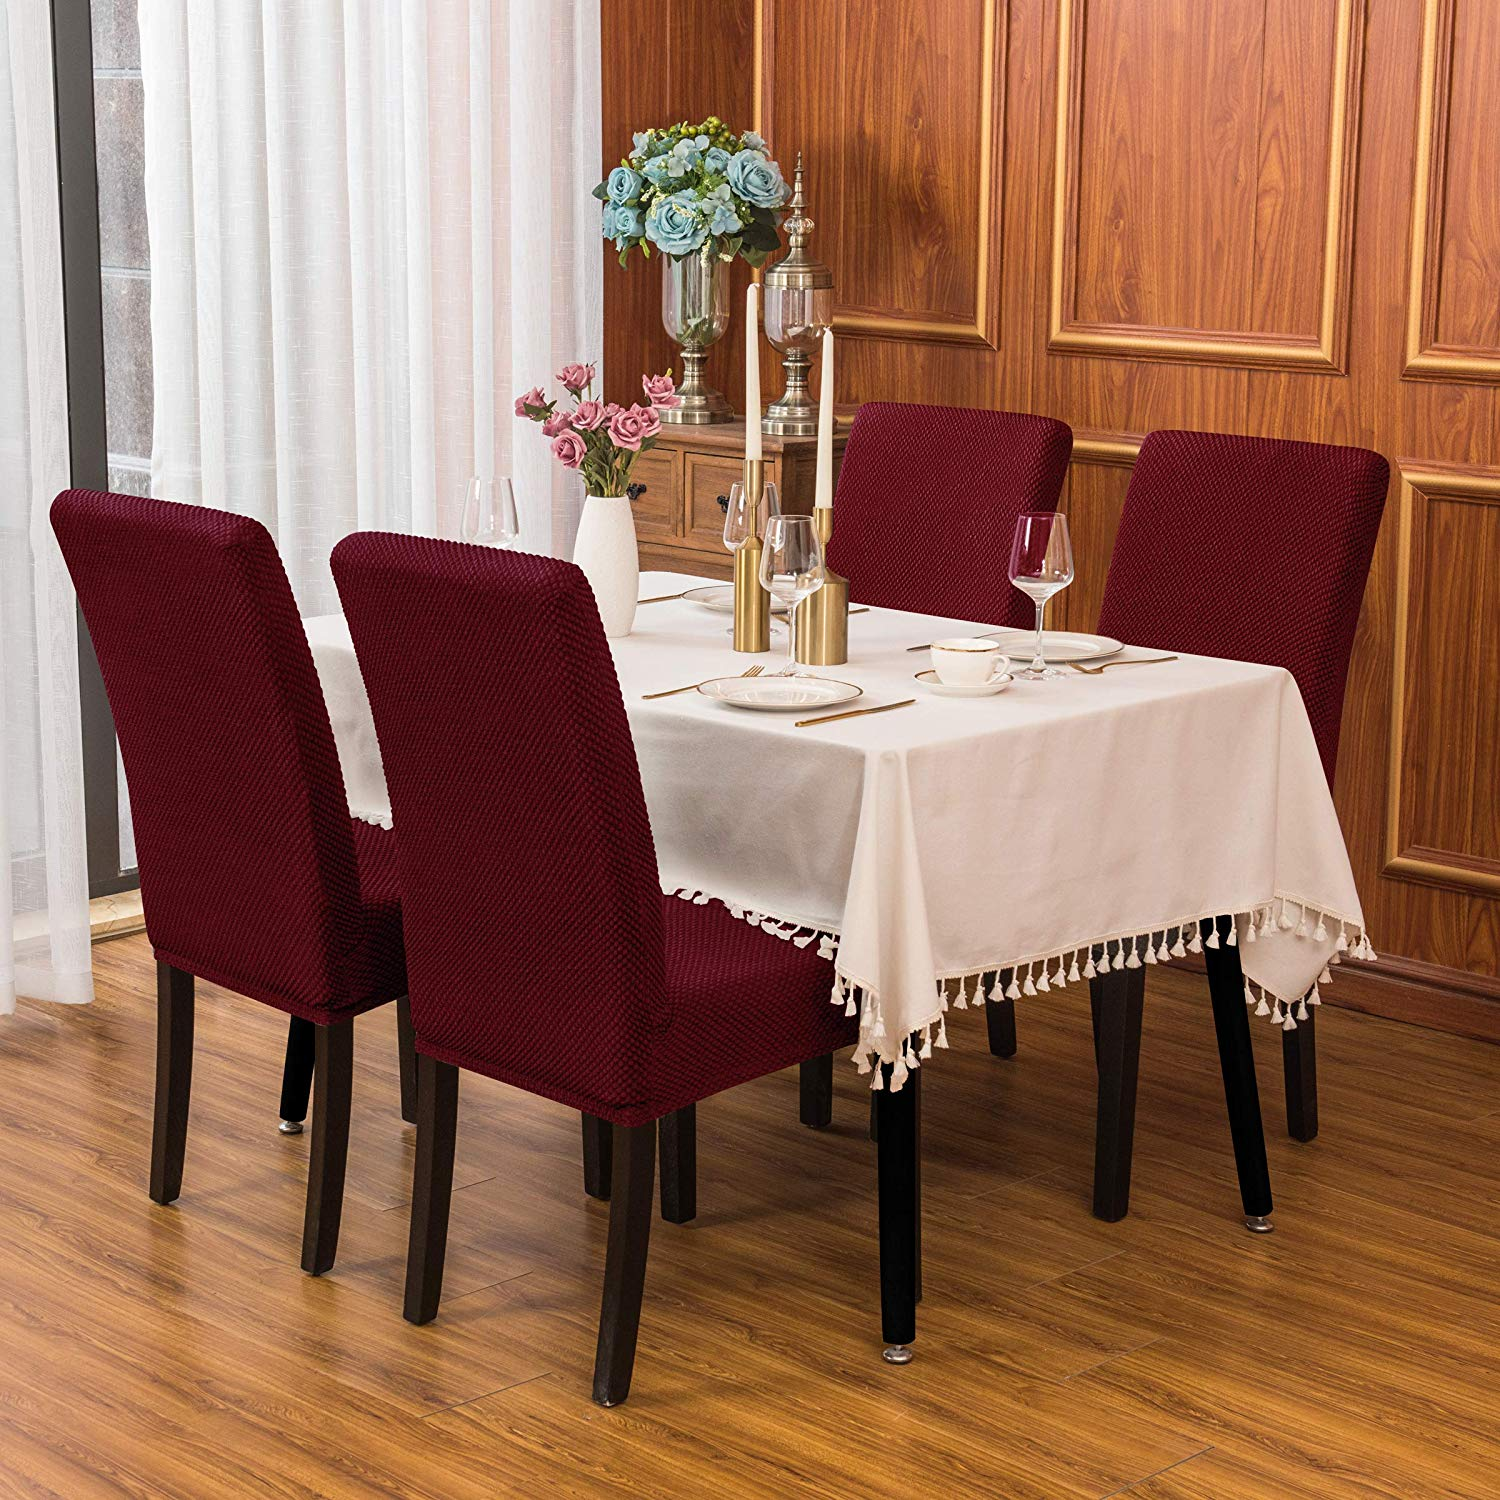 Top Rated In Dining Chair Slipcovers Helpful Customer Reviews Amazon Com